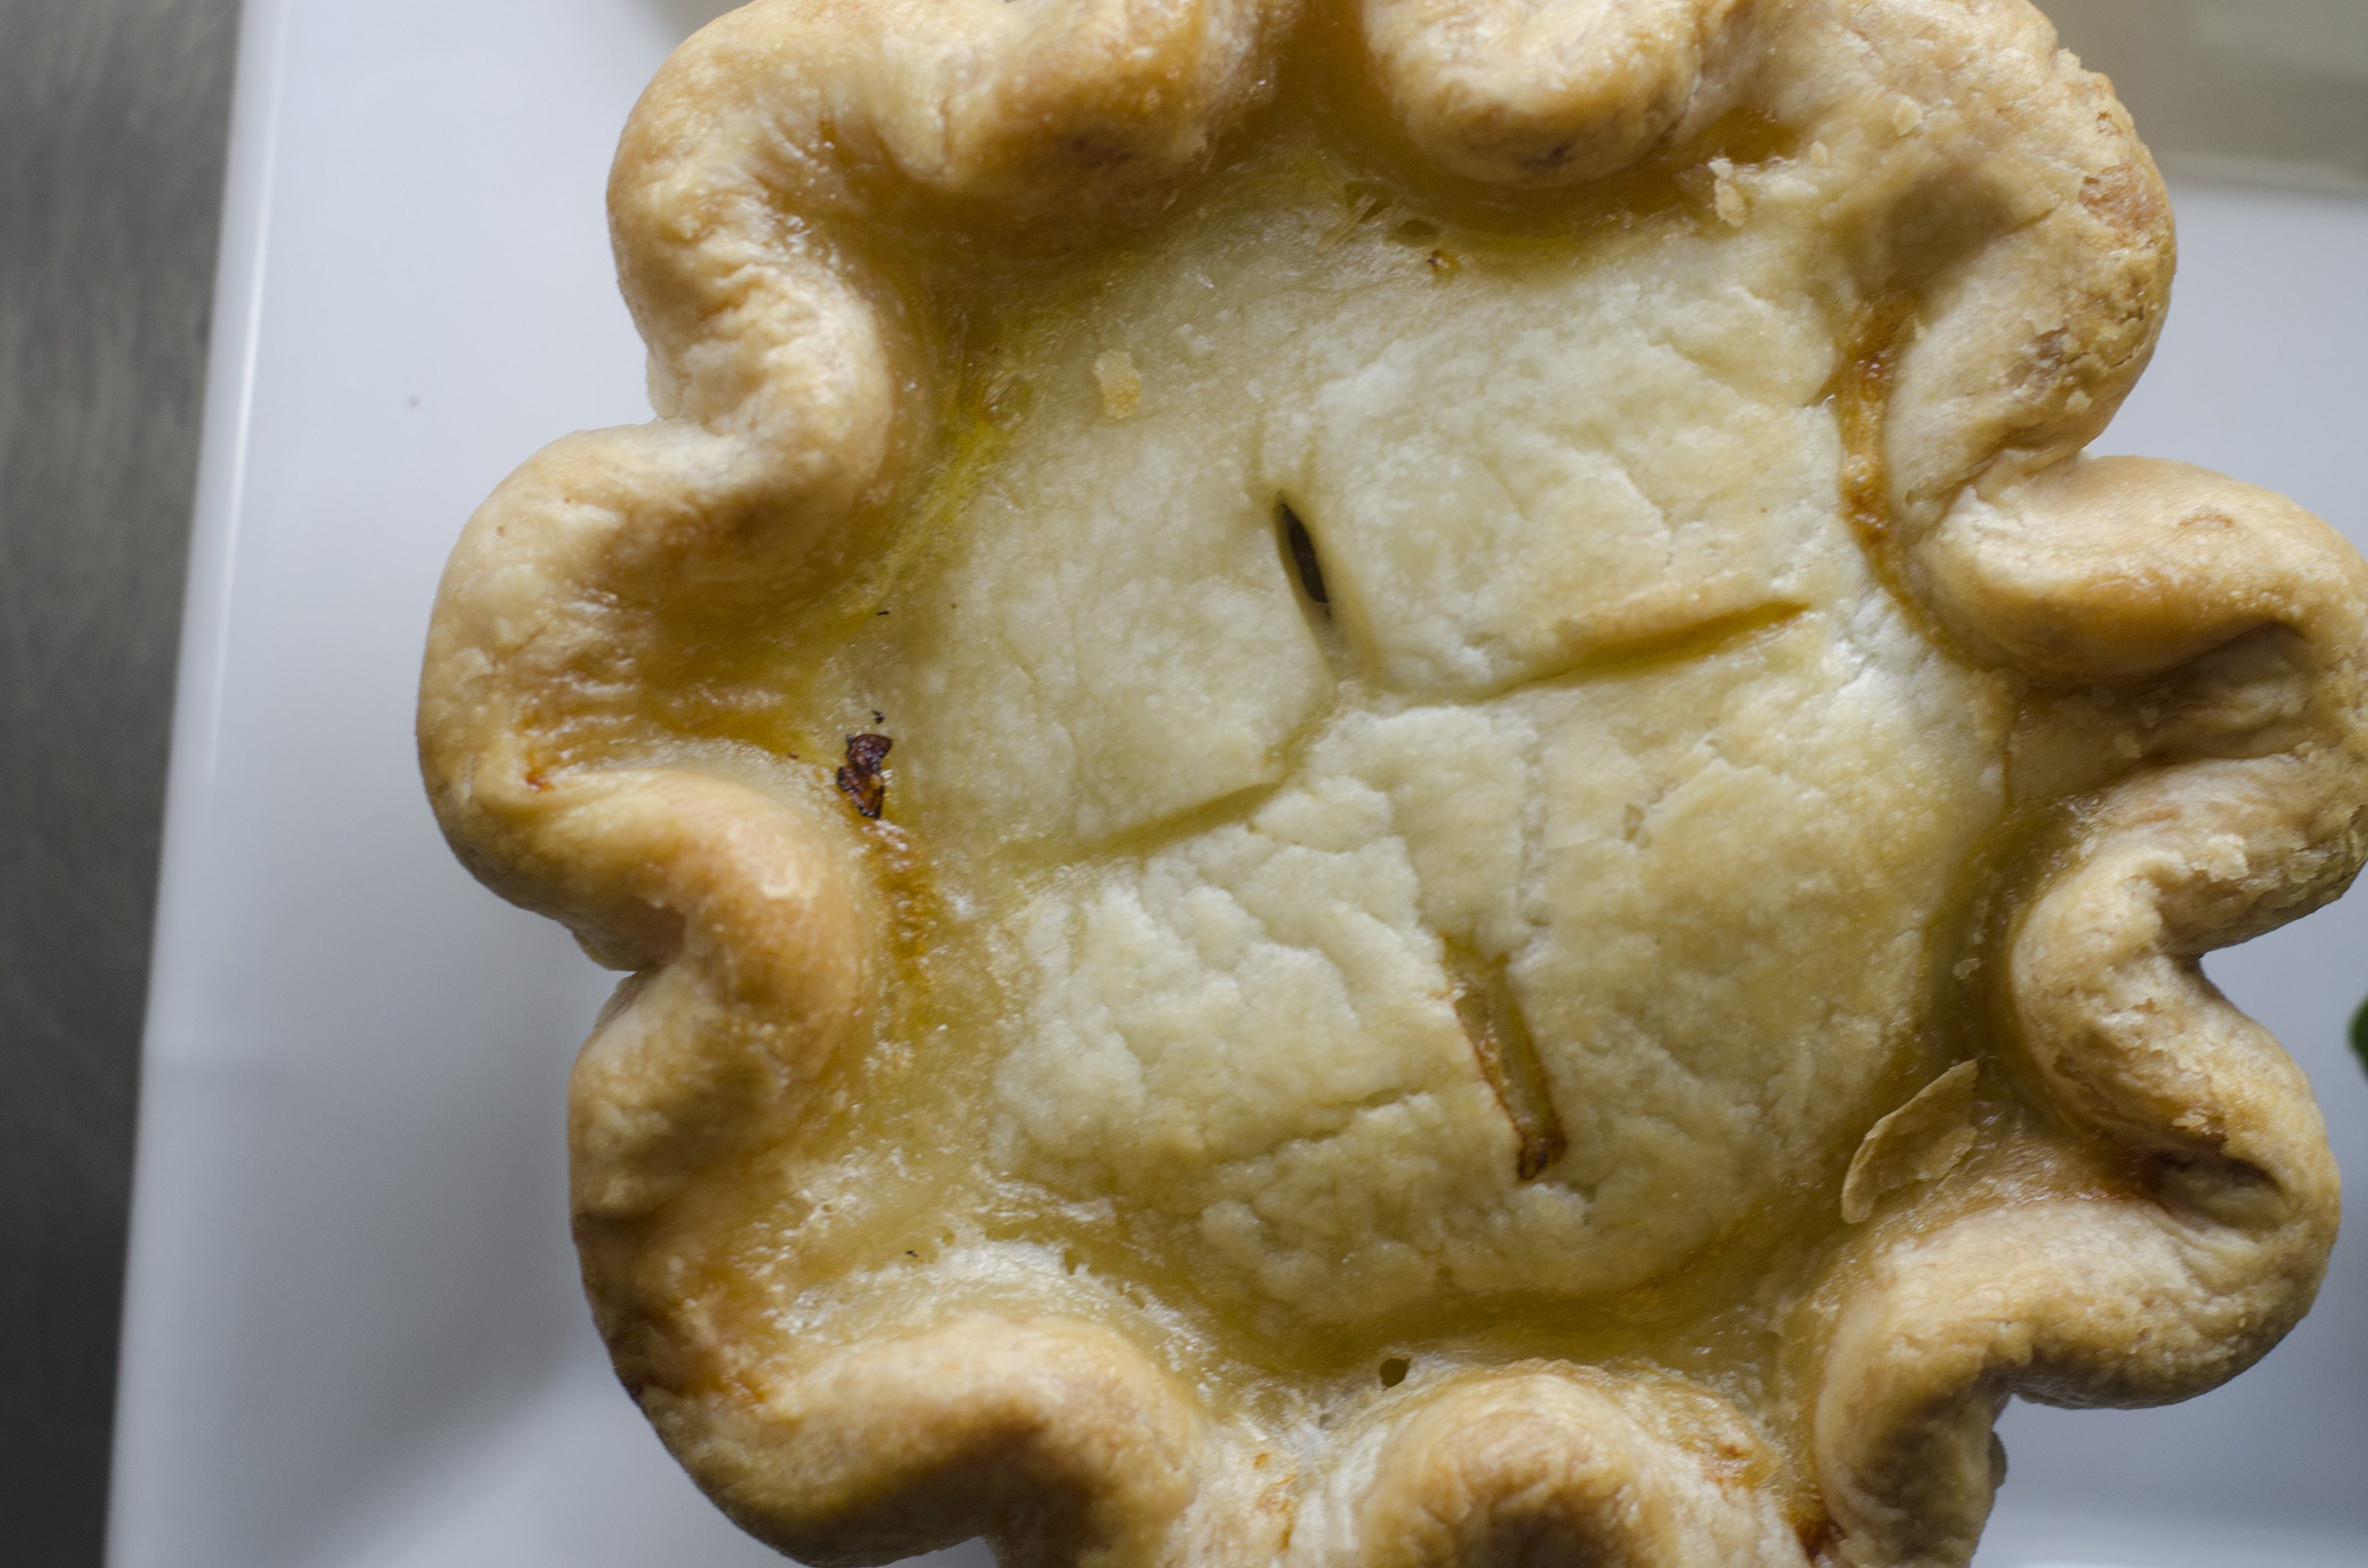 We heard Canada legalized pot pies. Finally!